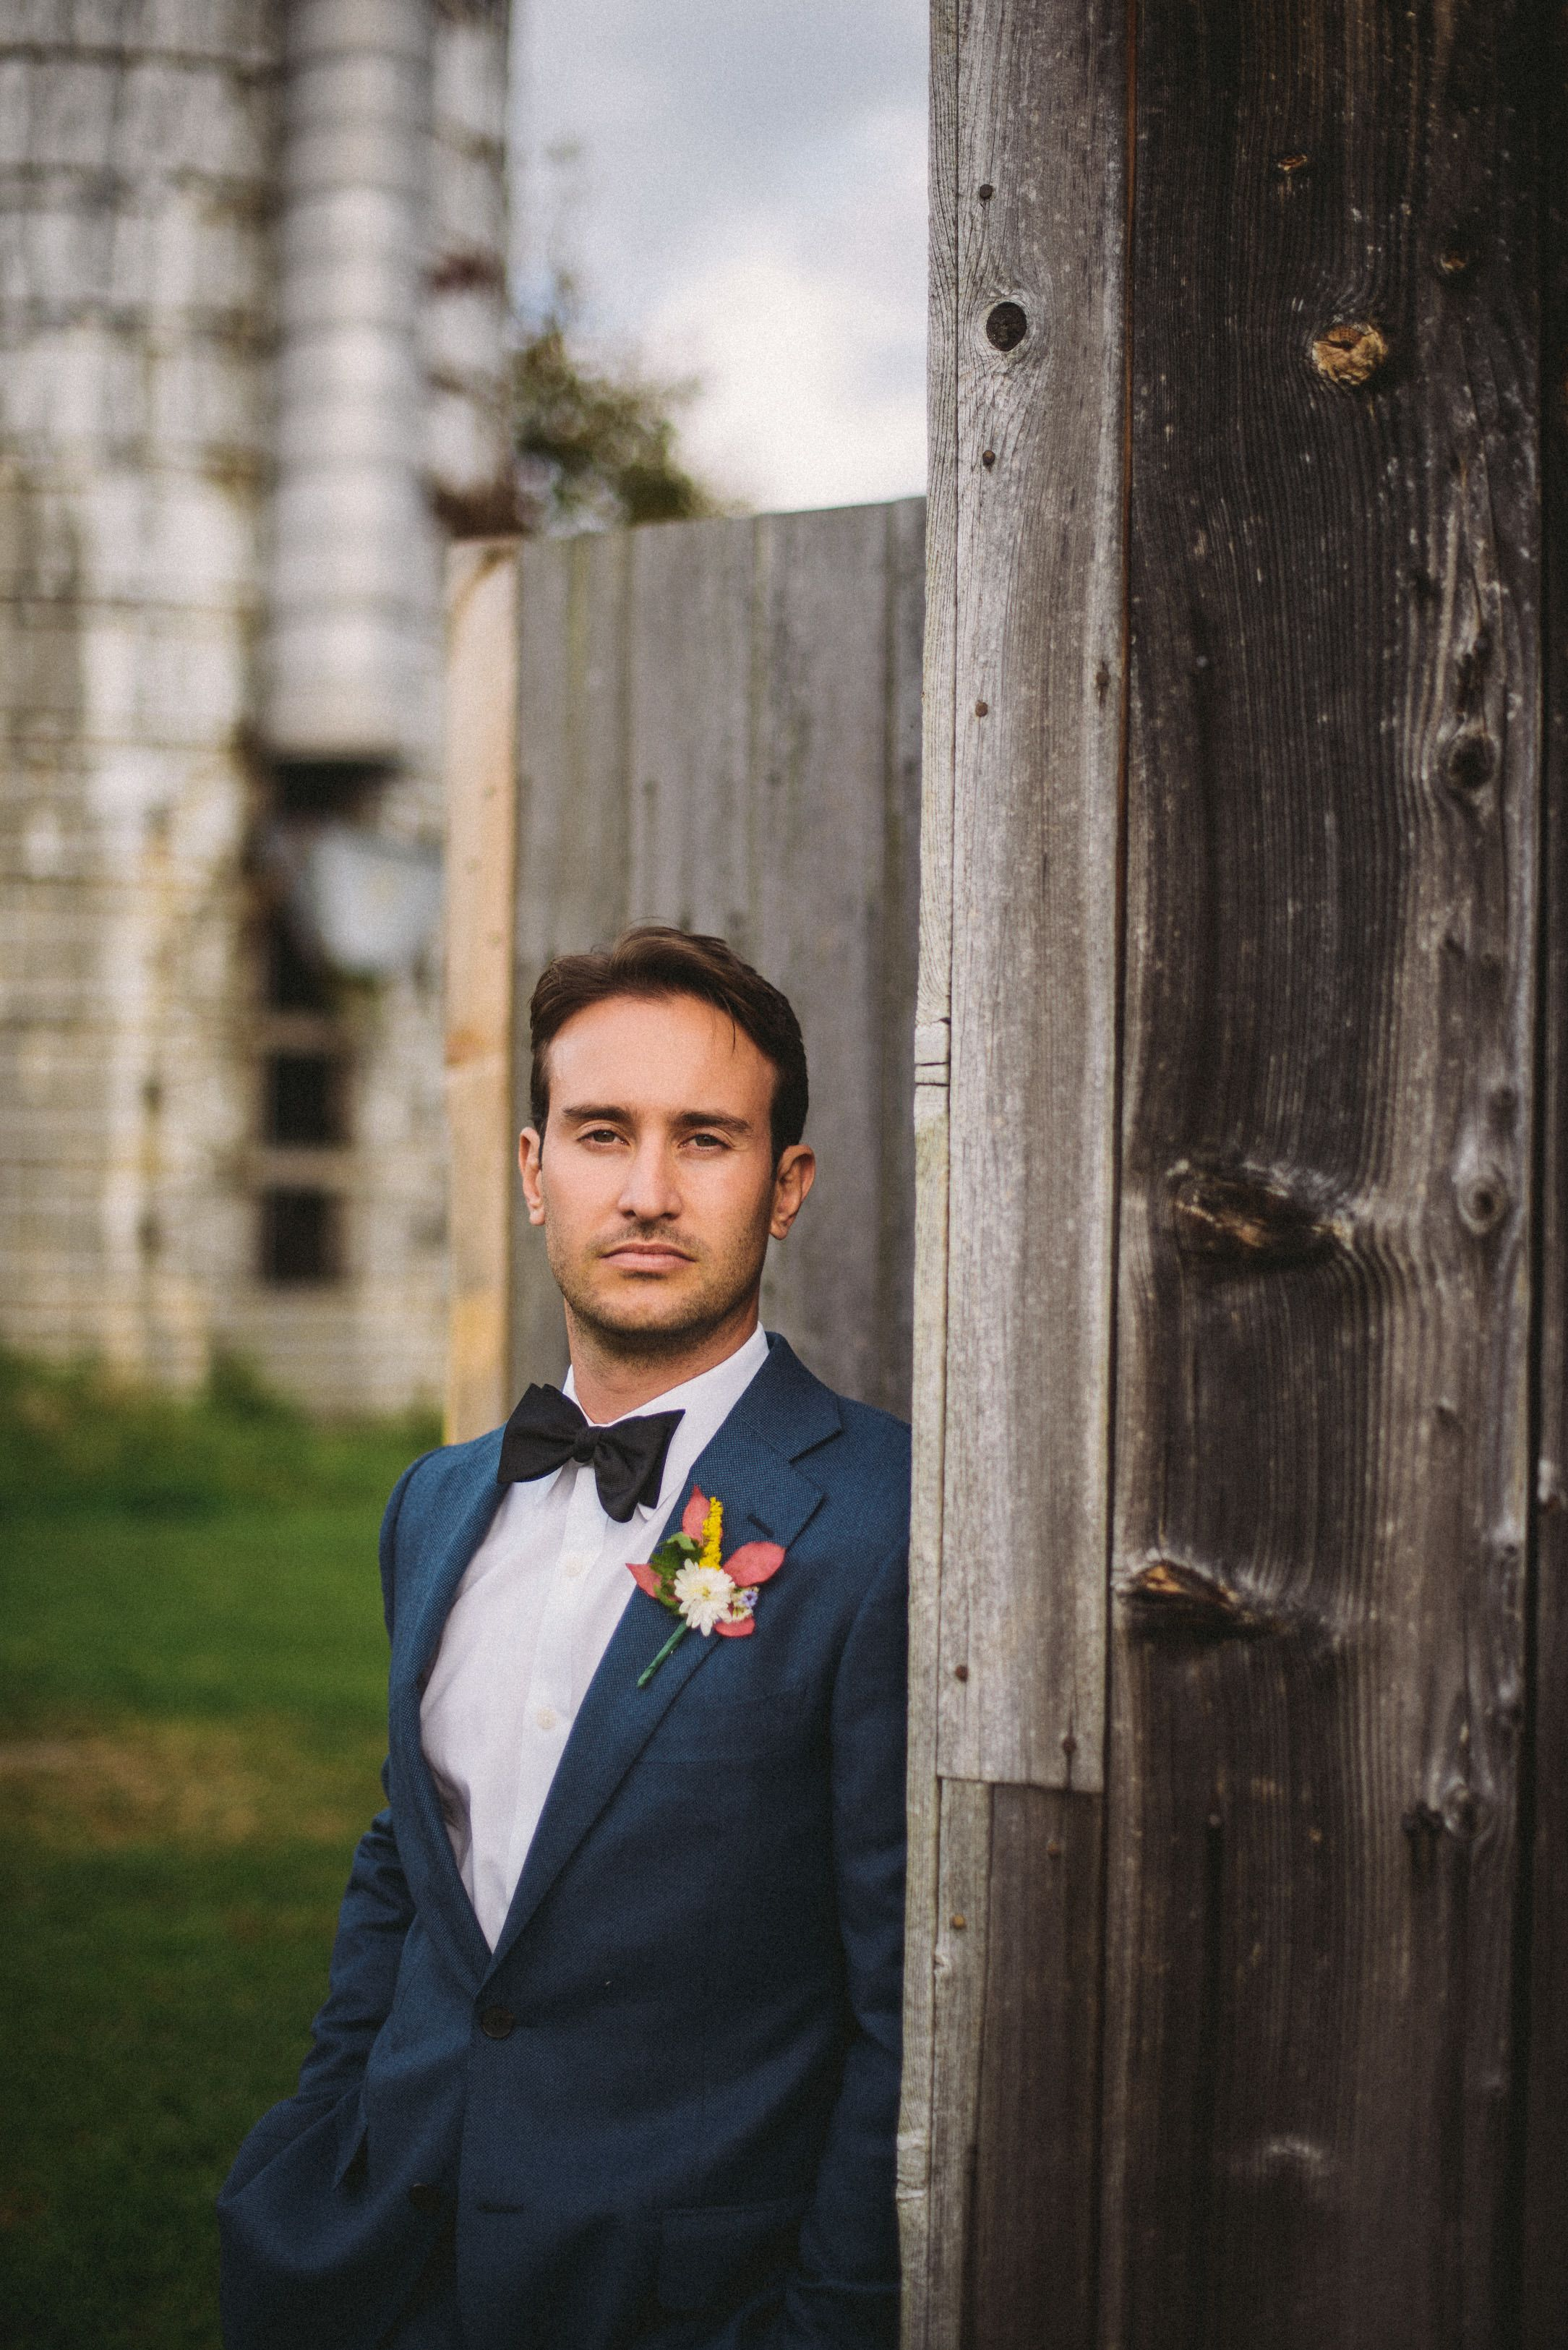 DIY Formal Wedding at Rufflands Farm | Suit supply, Wedding and ...